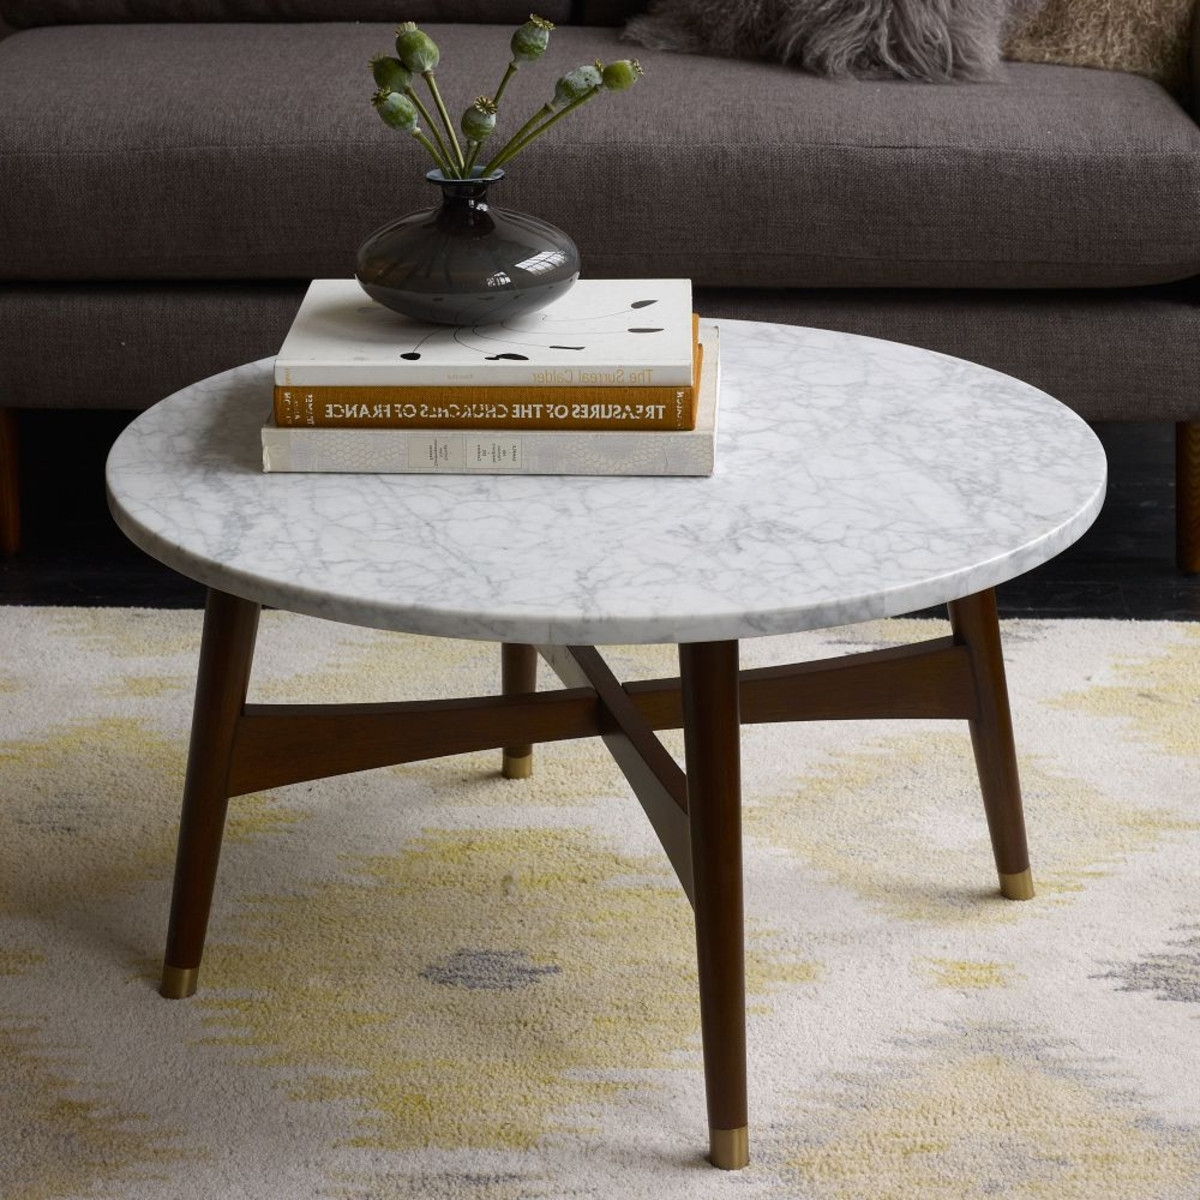 2017 2 Tone Grey And White Marble Coffee Tables With Decor: Inspiring Marble Coffee Table For Living Room Furniture Ideas (View 1 of 20)